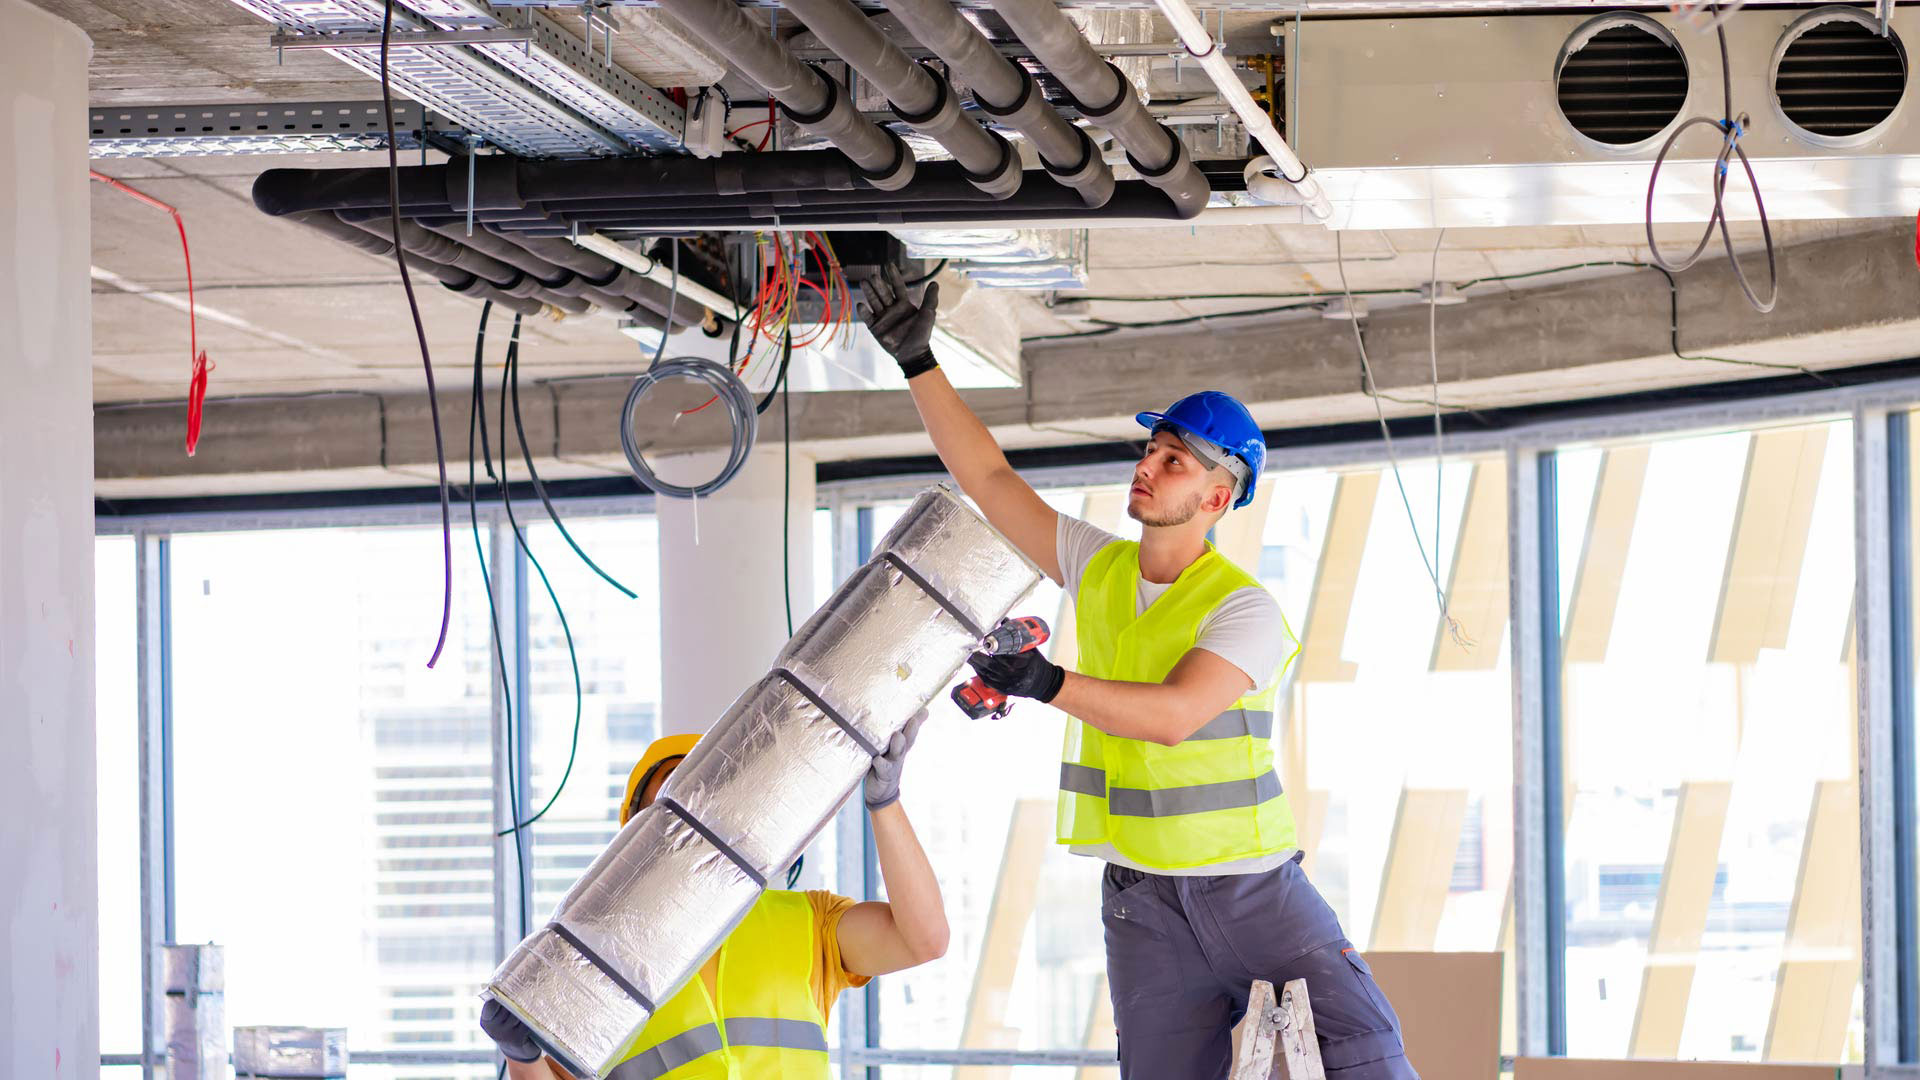 Professional Air Duct Cleaning | S & R Air Duct Cleaning Services